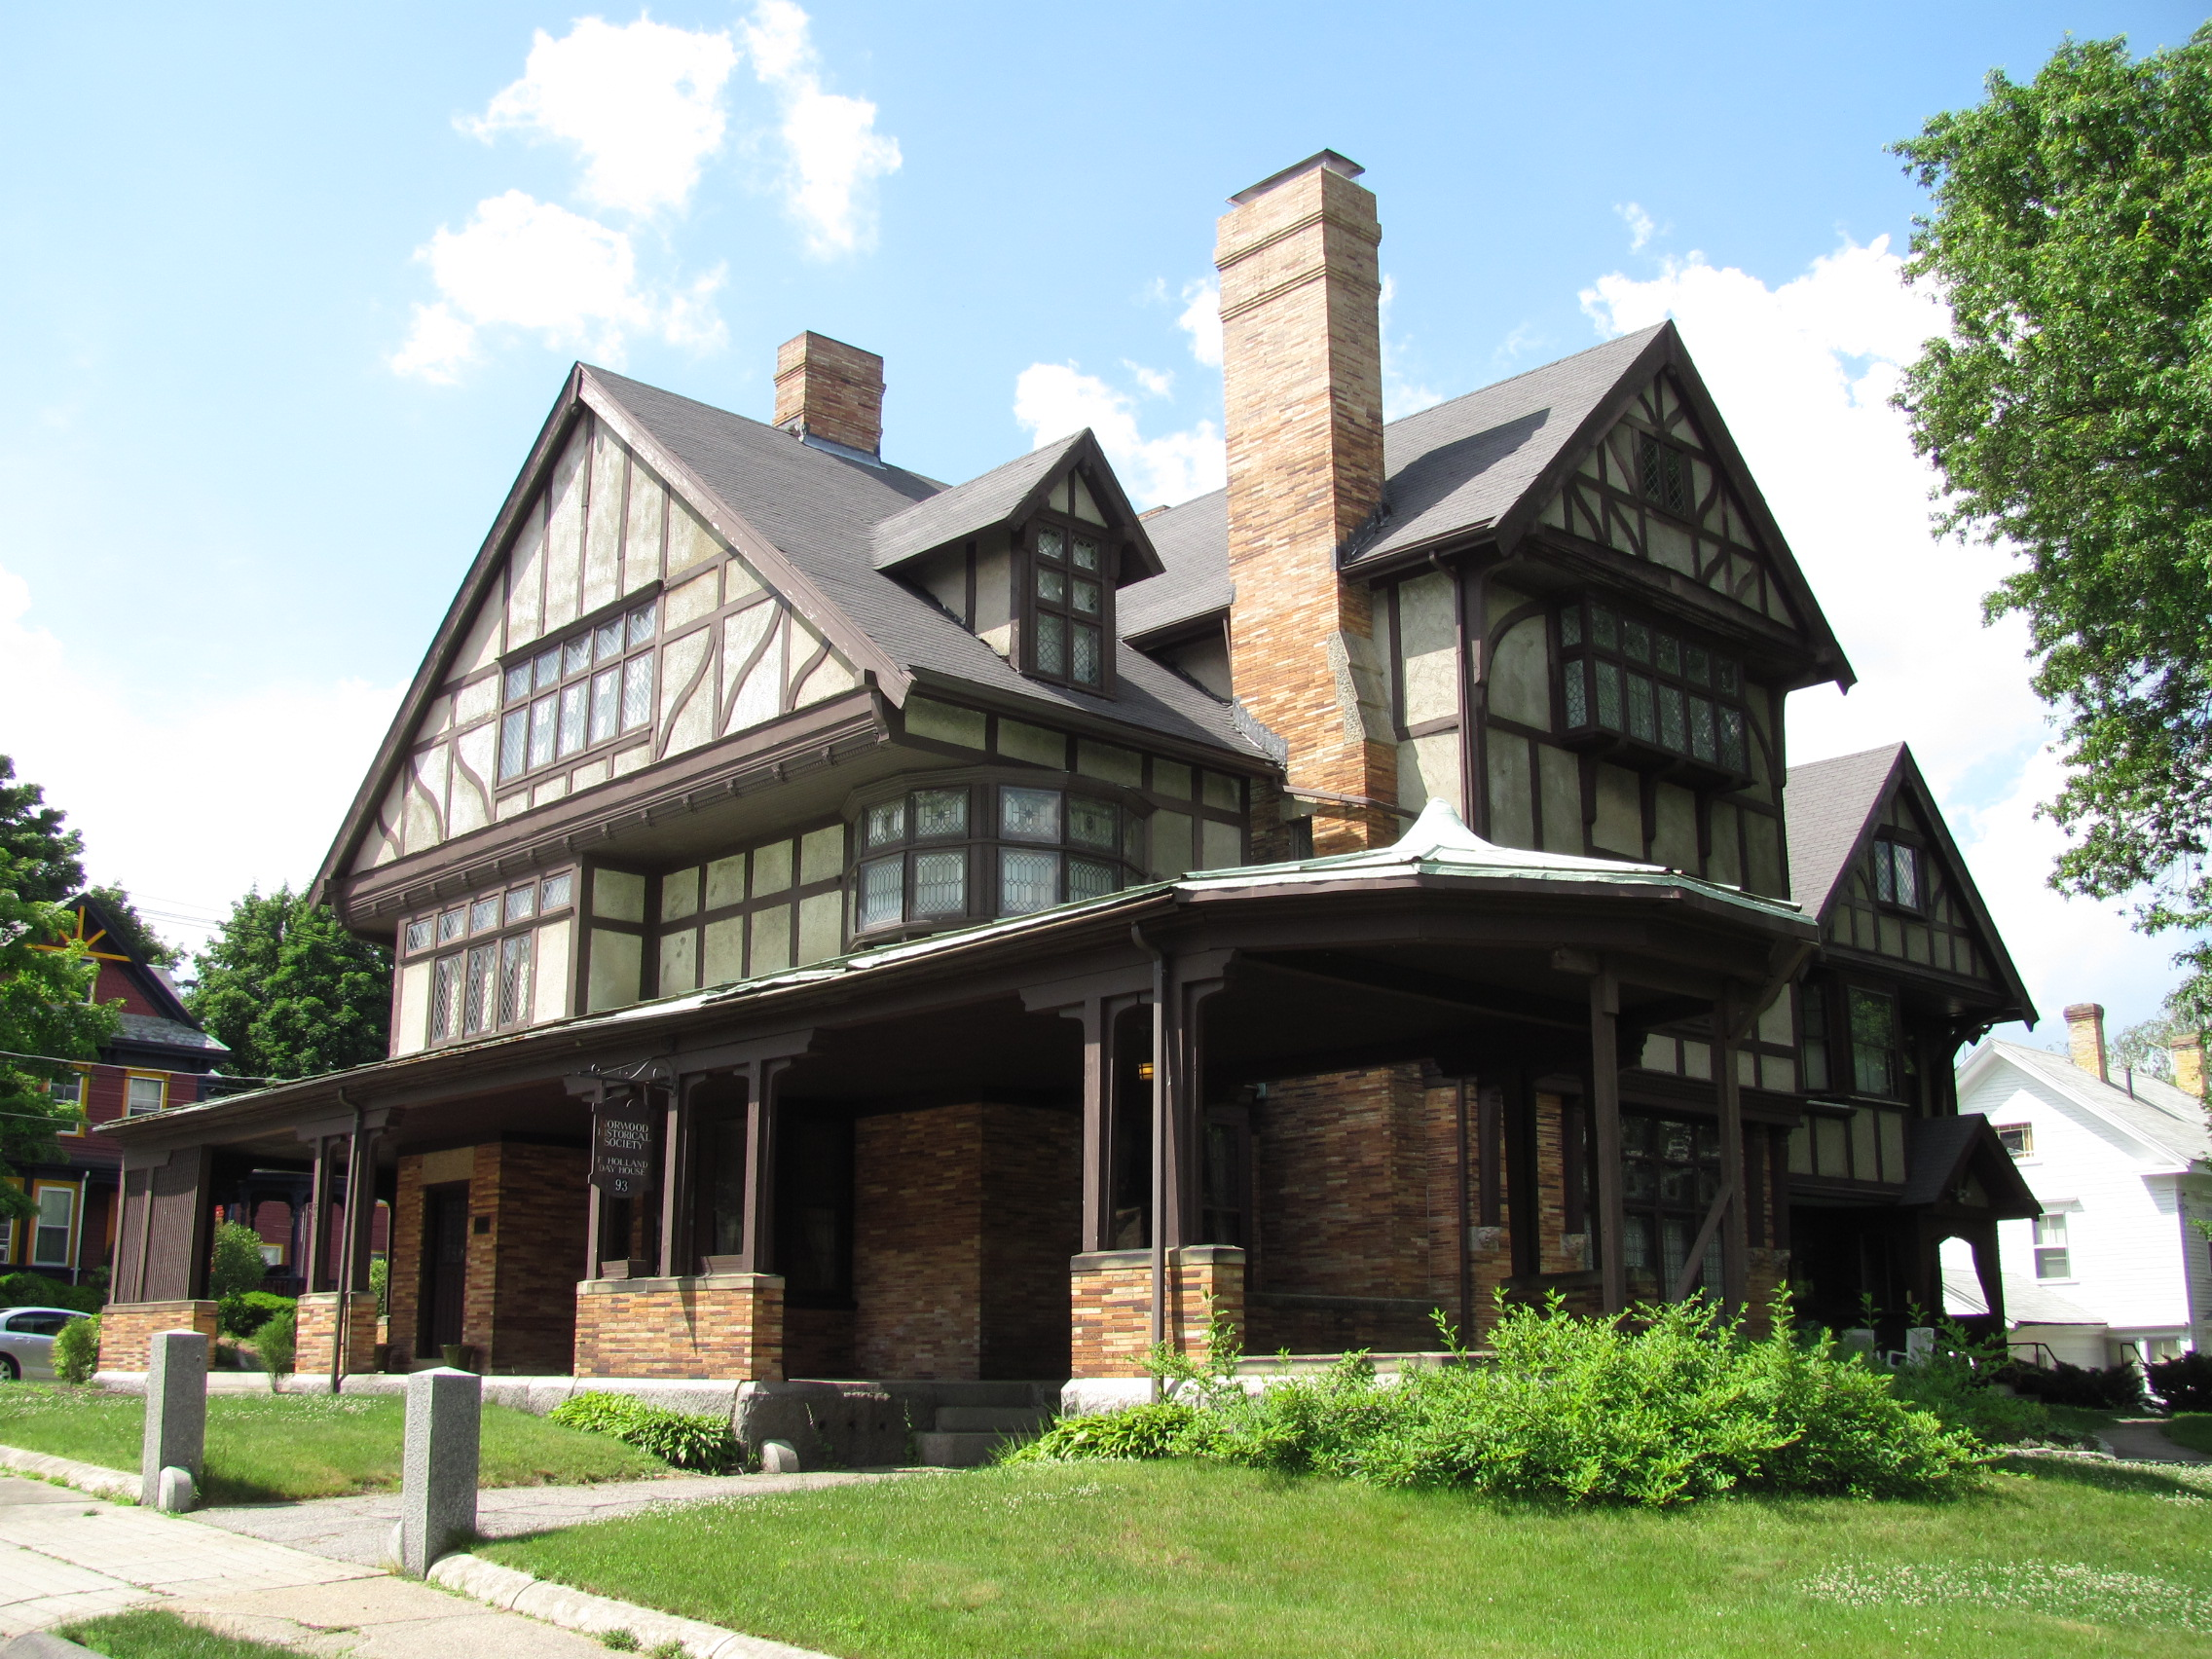 File fred holland day house norwood wikimedia for Home daylight